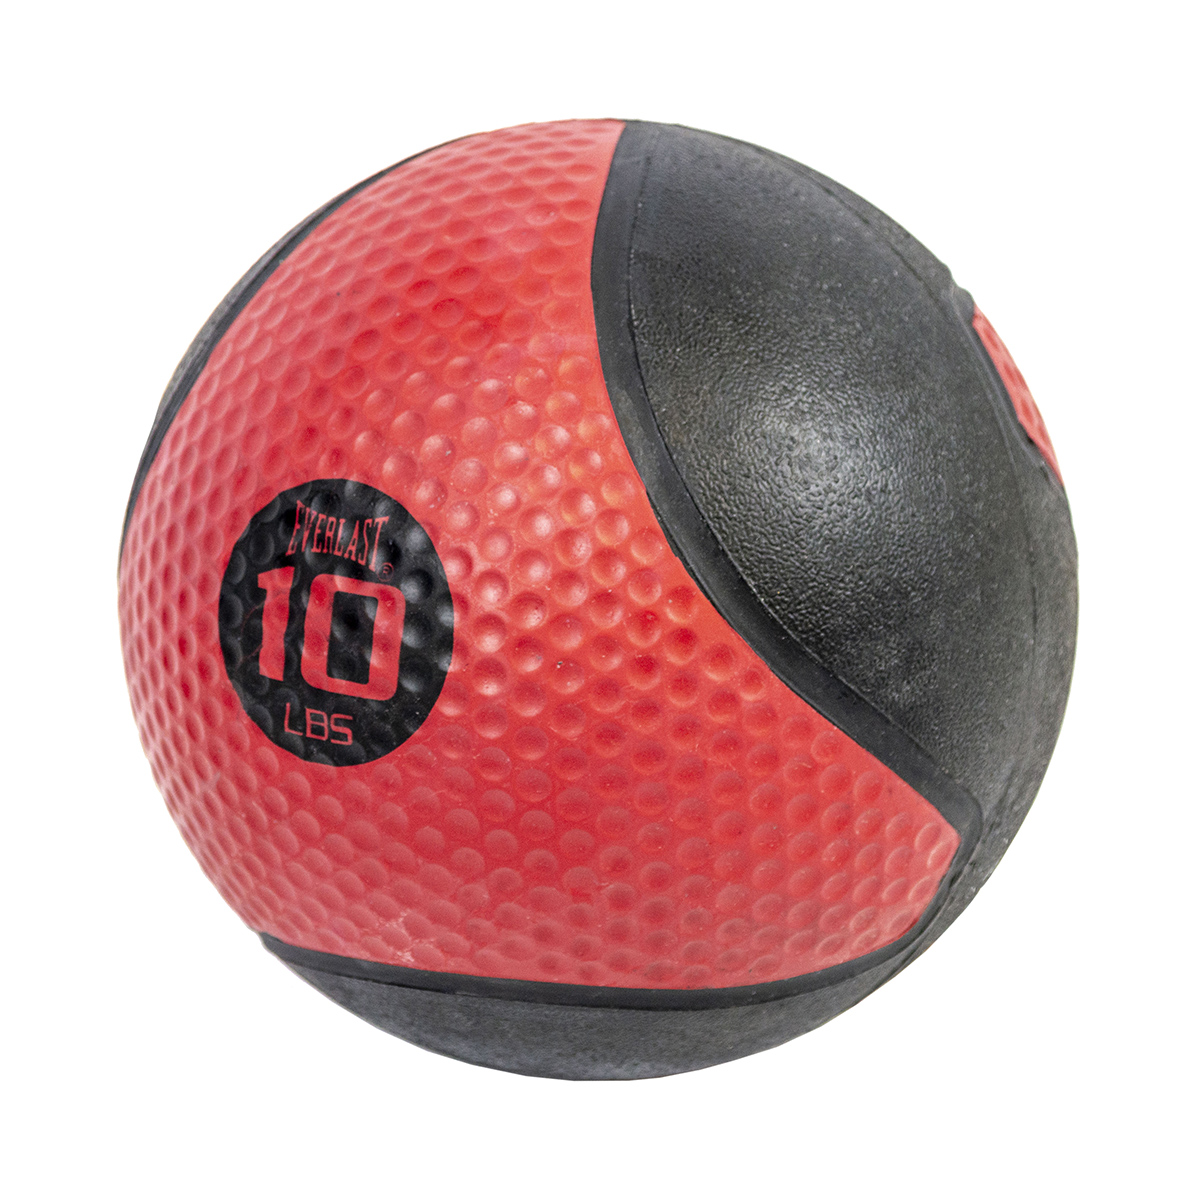 Everlast 10 lb. Hard Medicine Ball